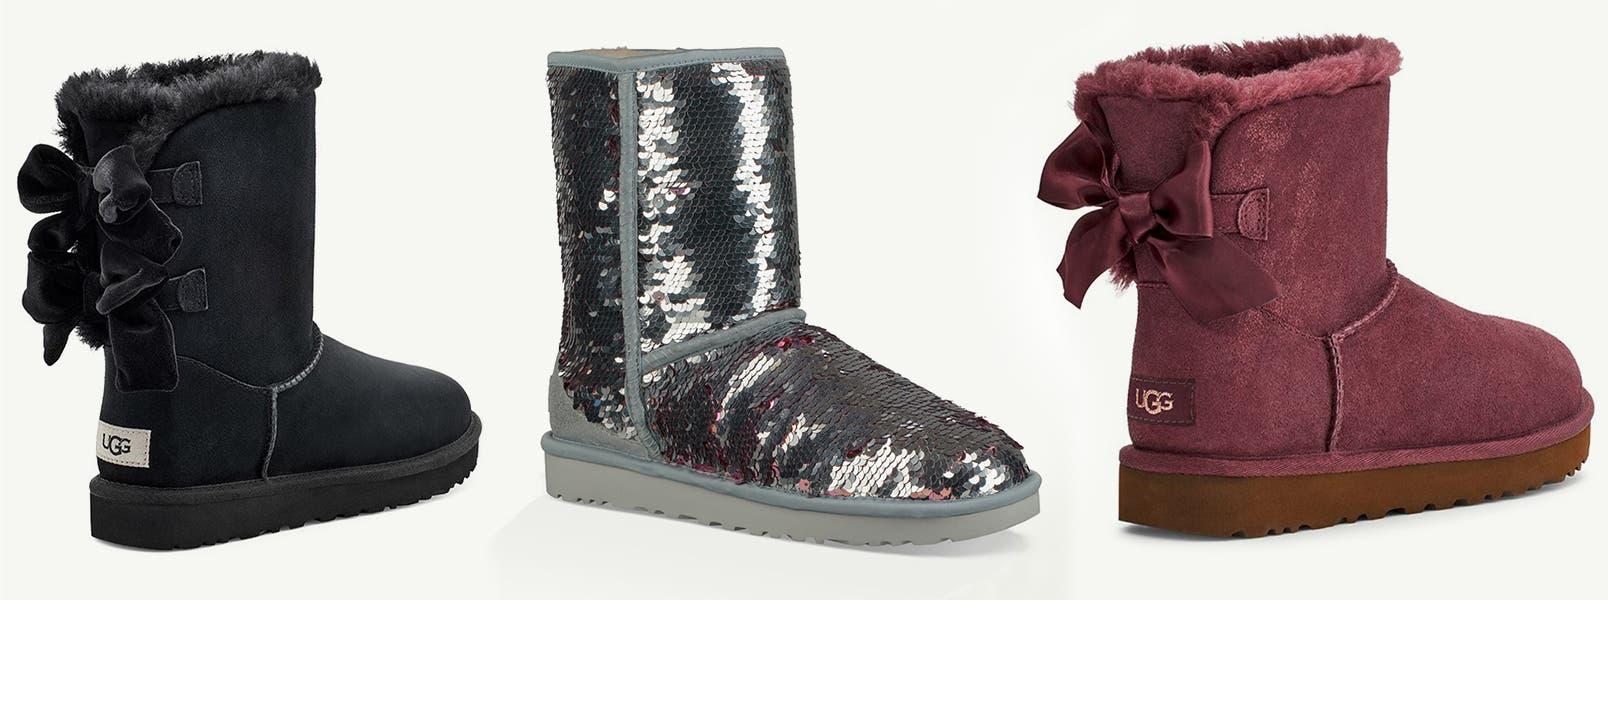 A mid-height black boot with two black ribbon ties; a short, light gray boot covered in silver sequins; and a short, plum-colored boot with one ribbon tie in the back.